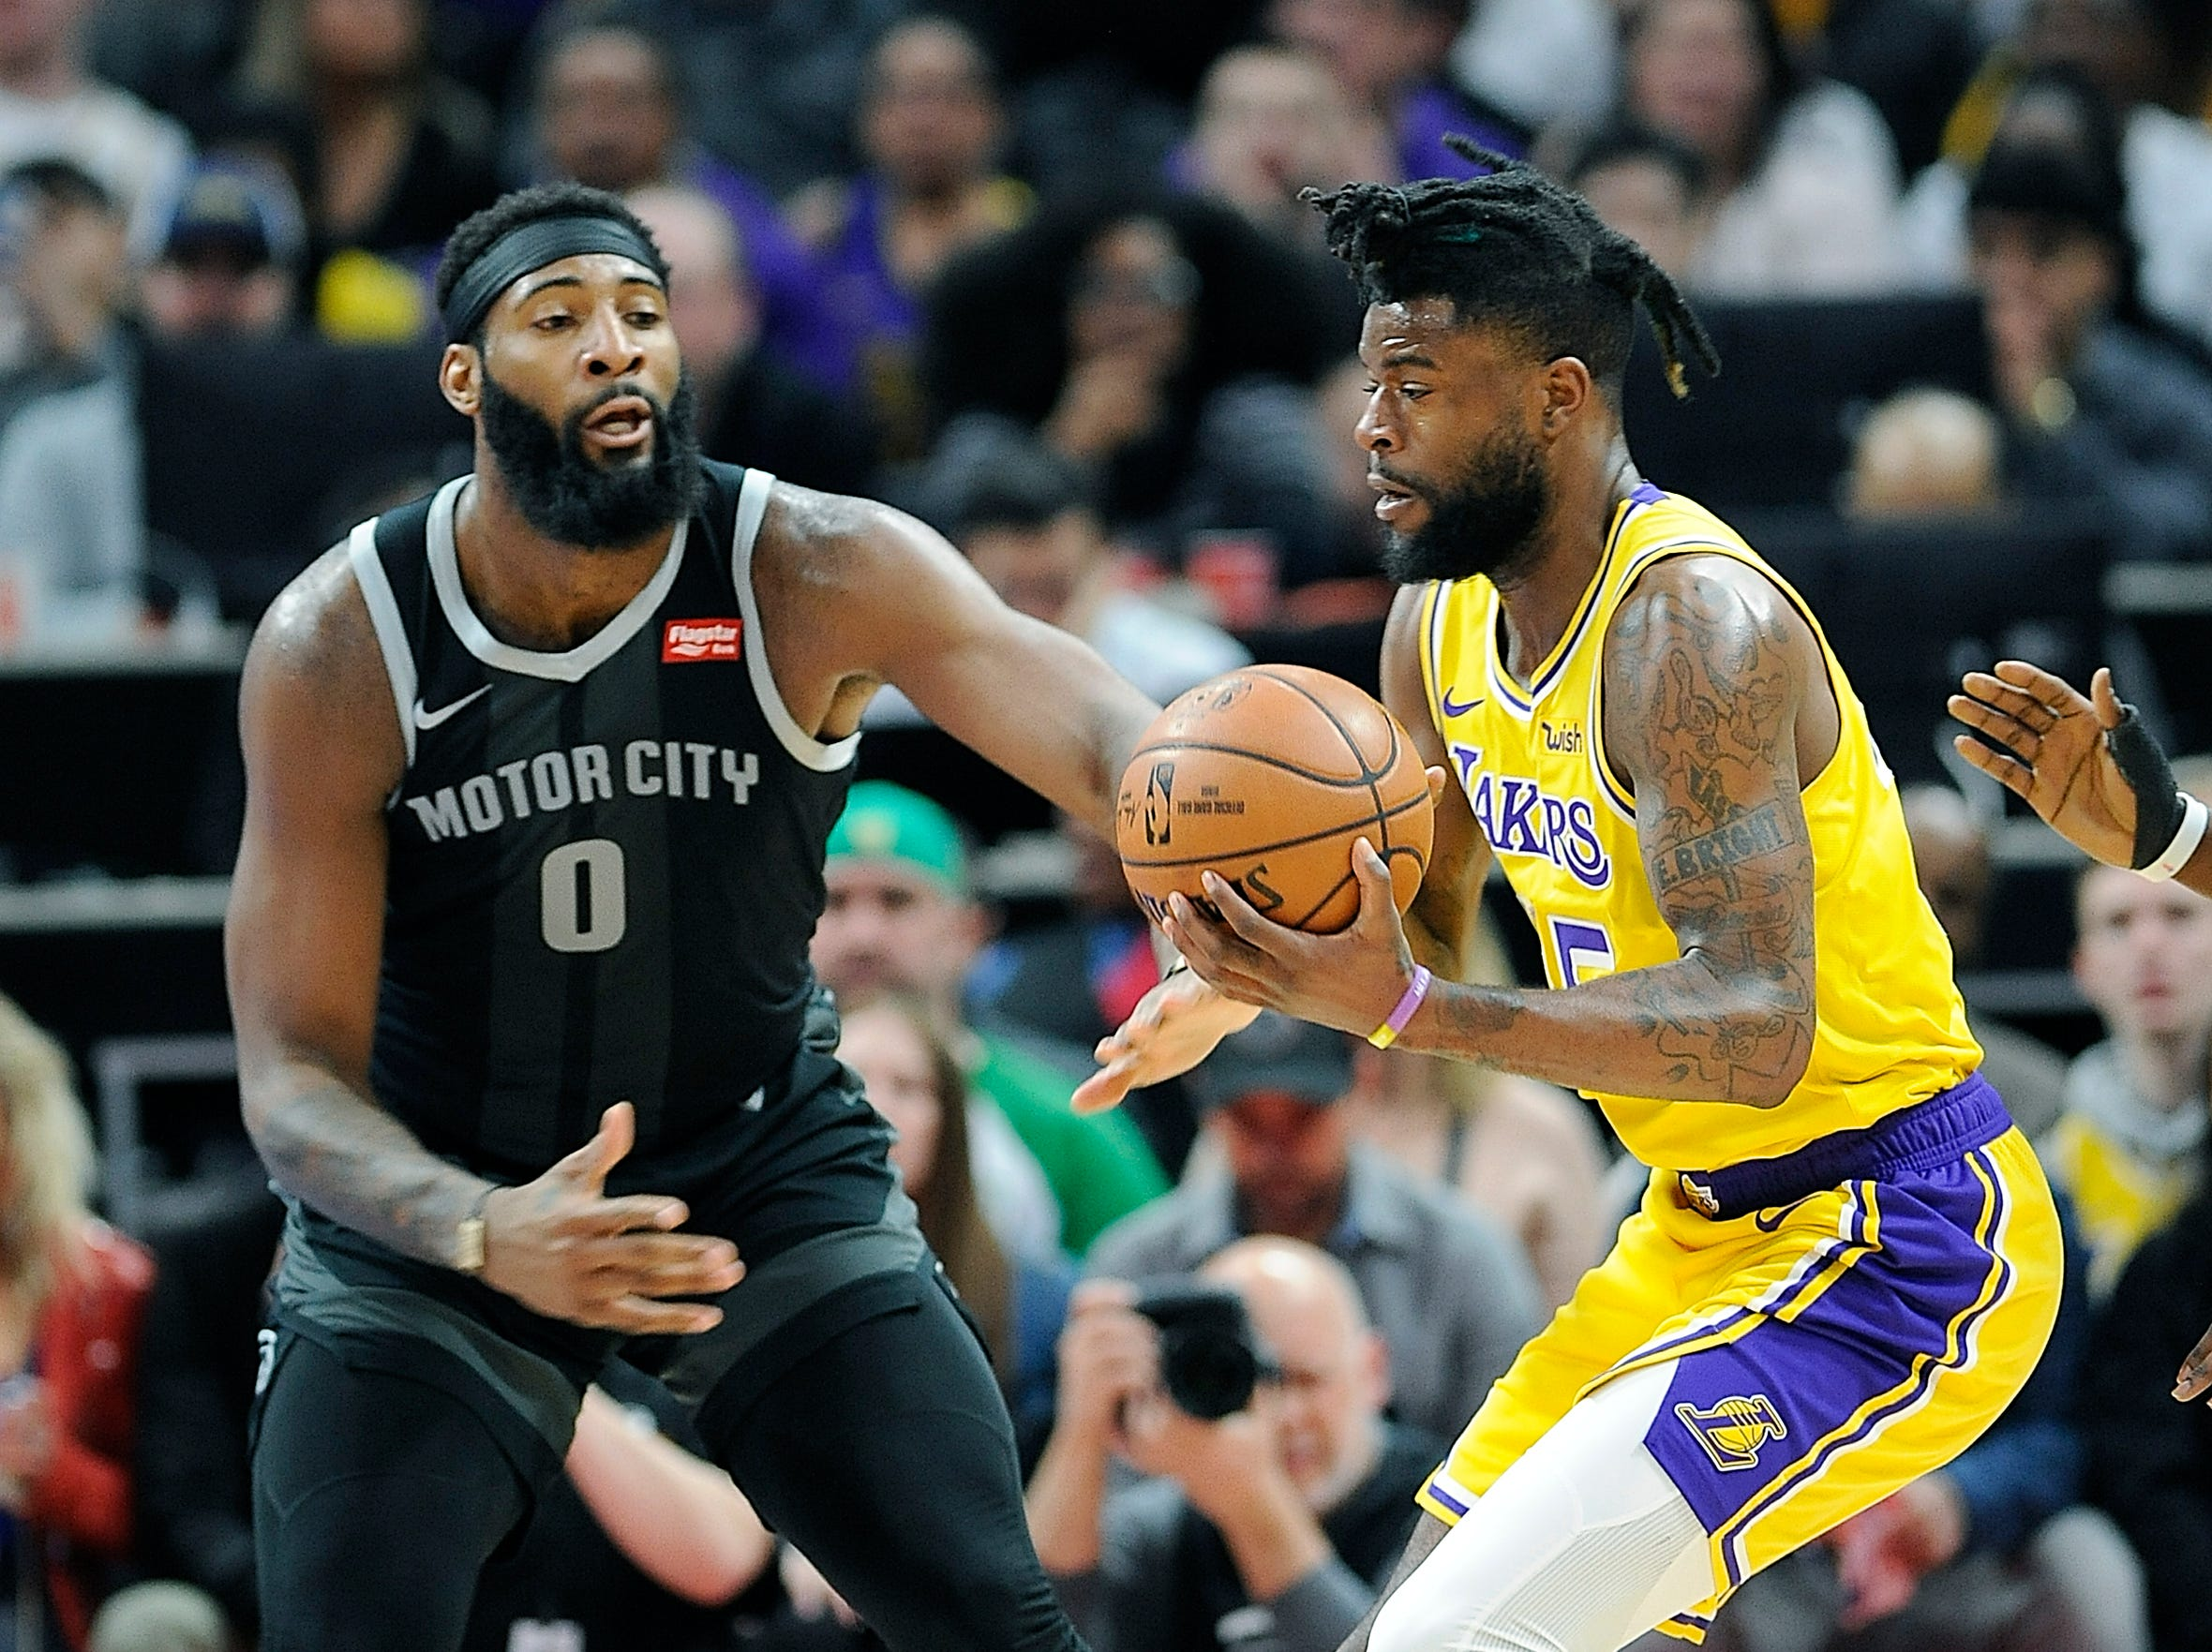 Pistons' Andre Drummond defends Lakers' Reggie Bullock in the first quarter.